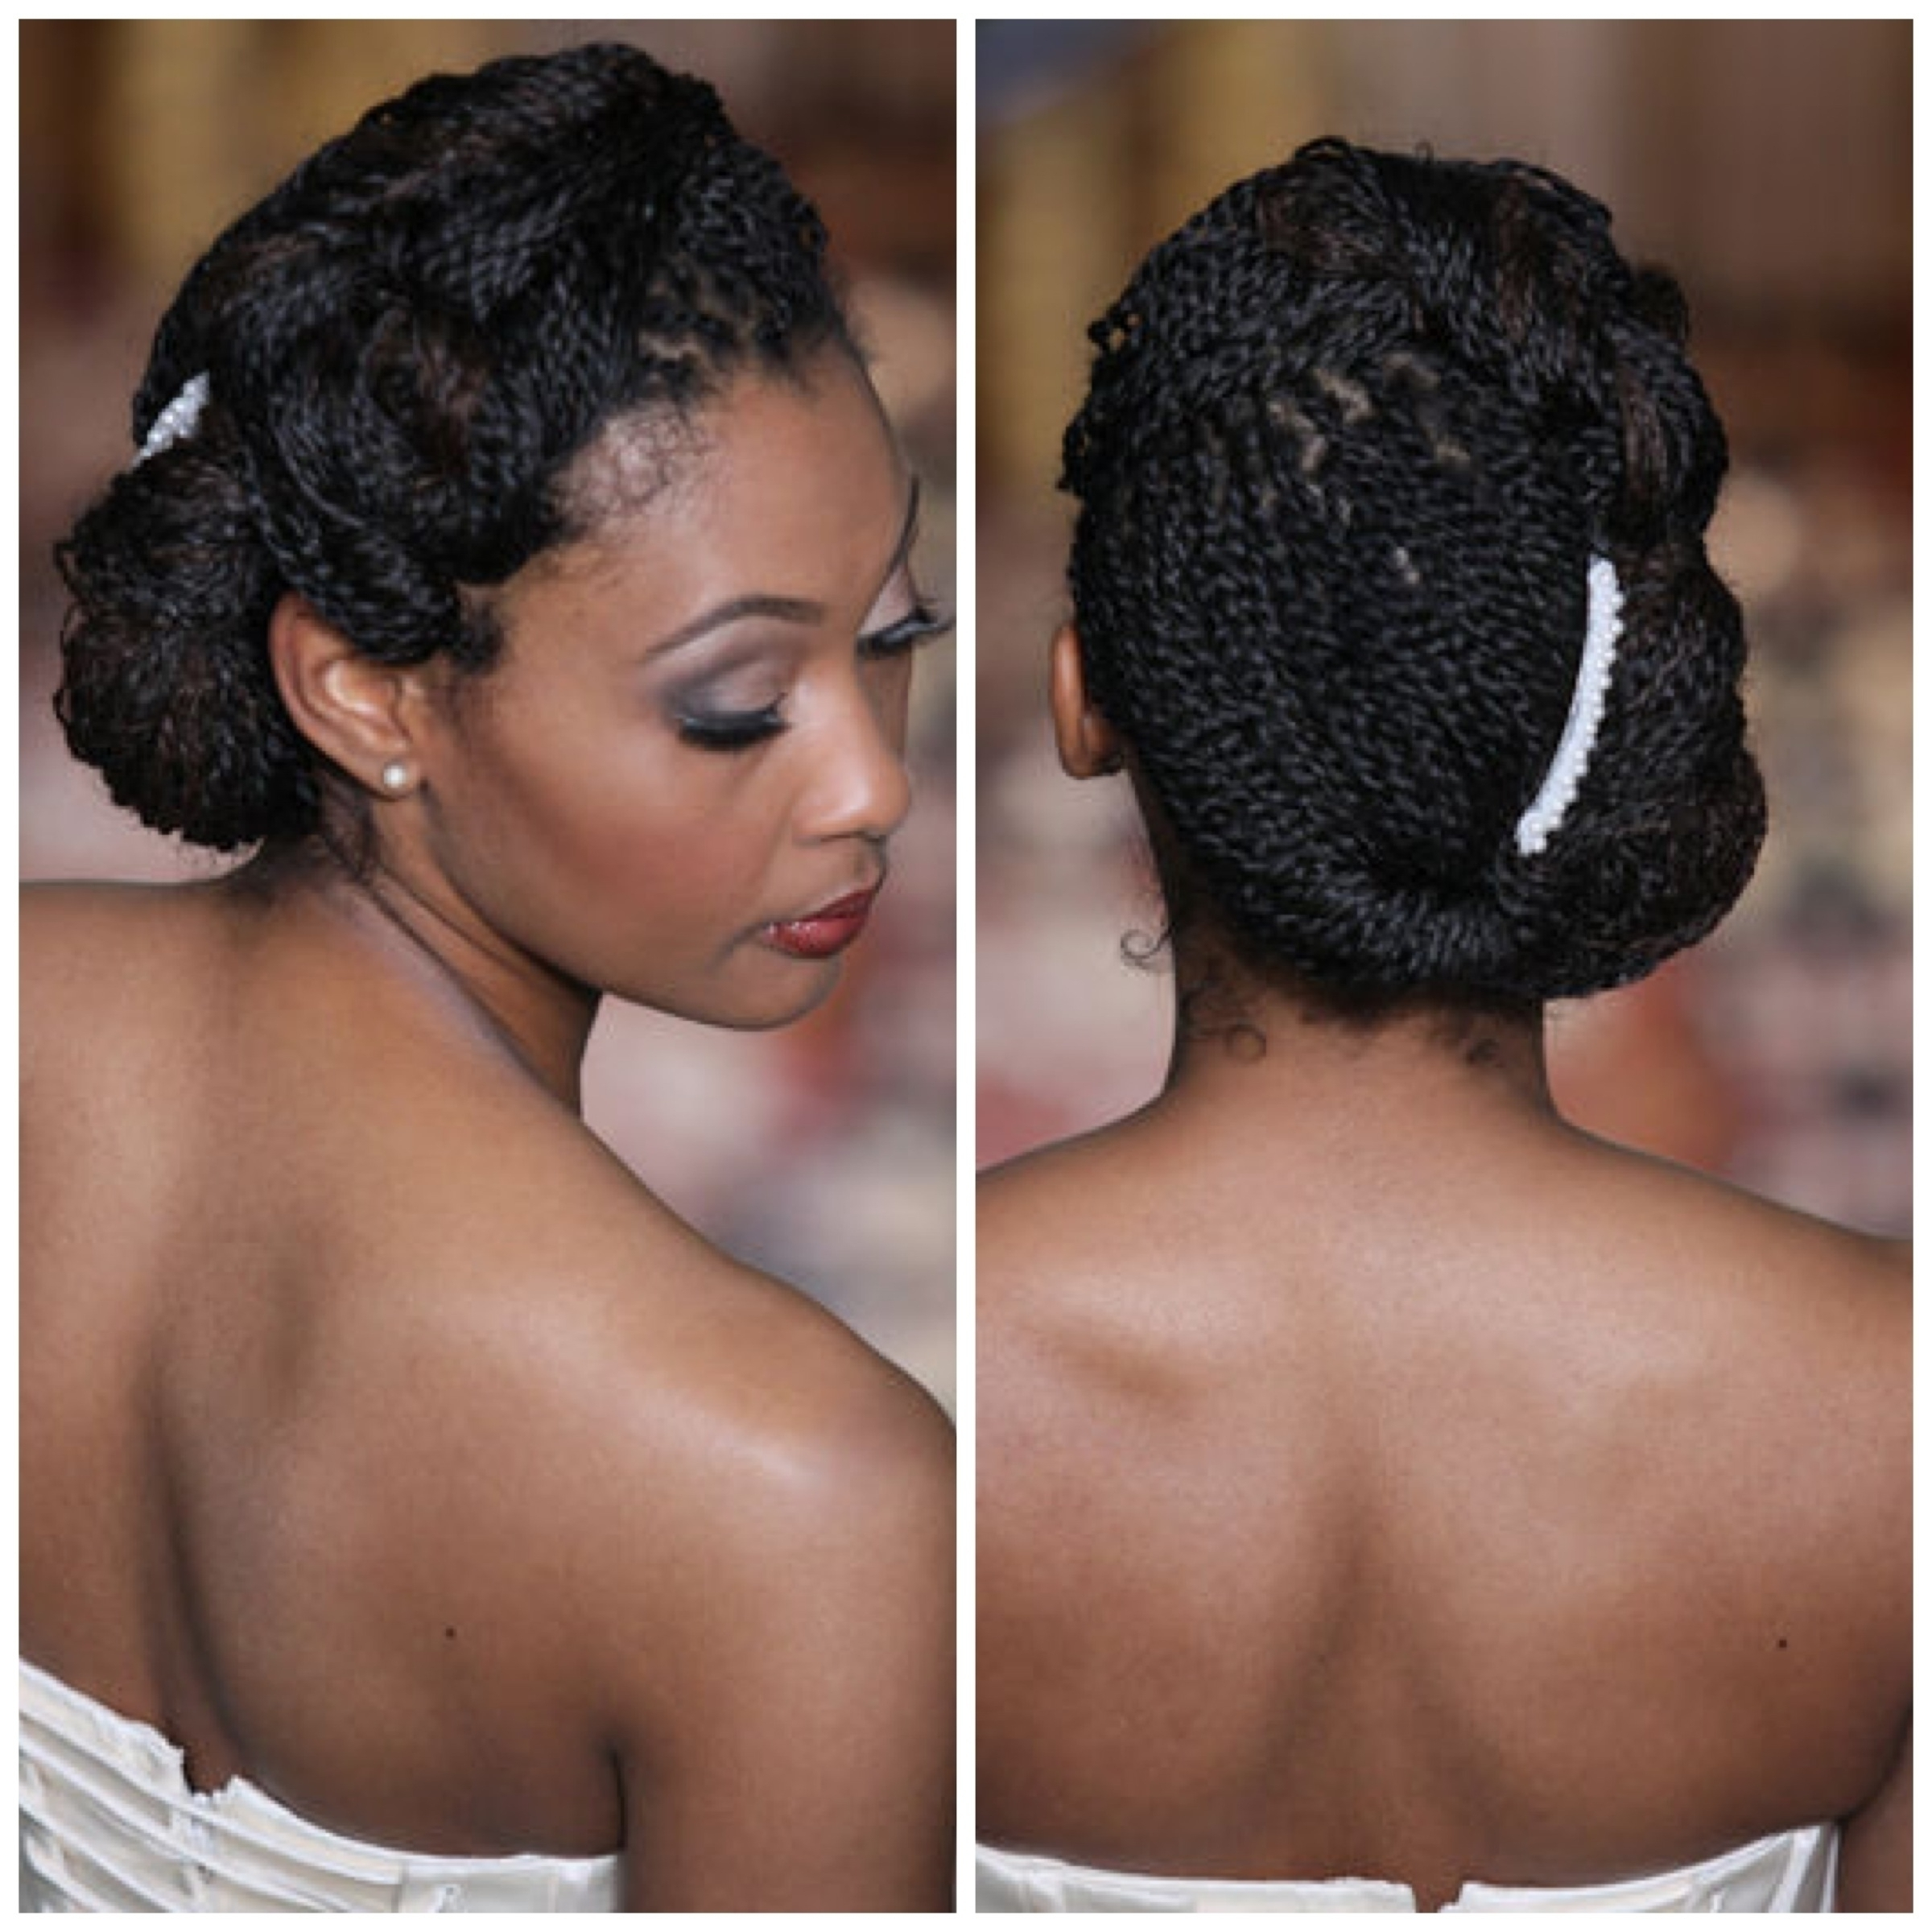 Captivating Braided Updo Hairstyles Black Hair With Additional Updo Intended For Braided Updo Hairstyles For Black Hair (View 14 of 15)